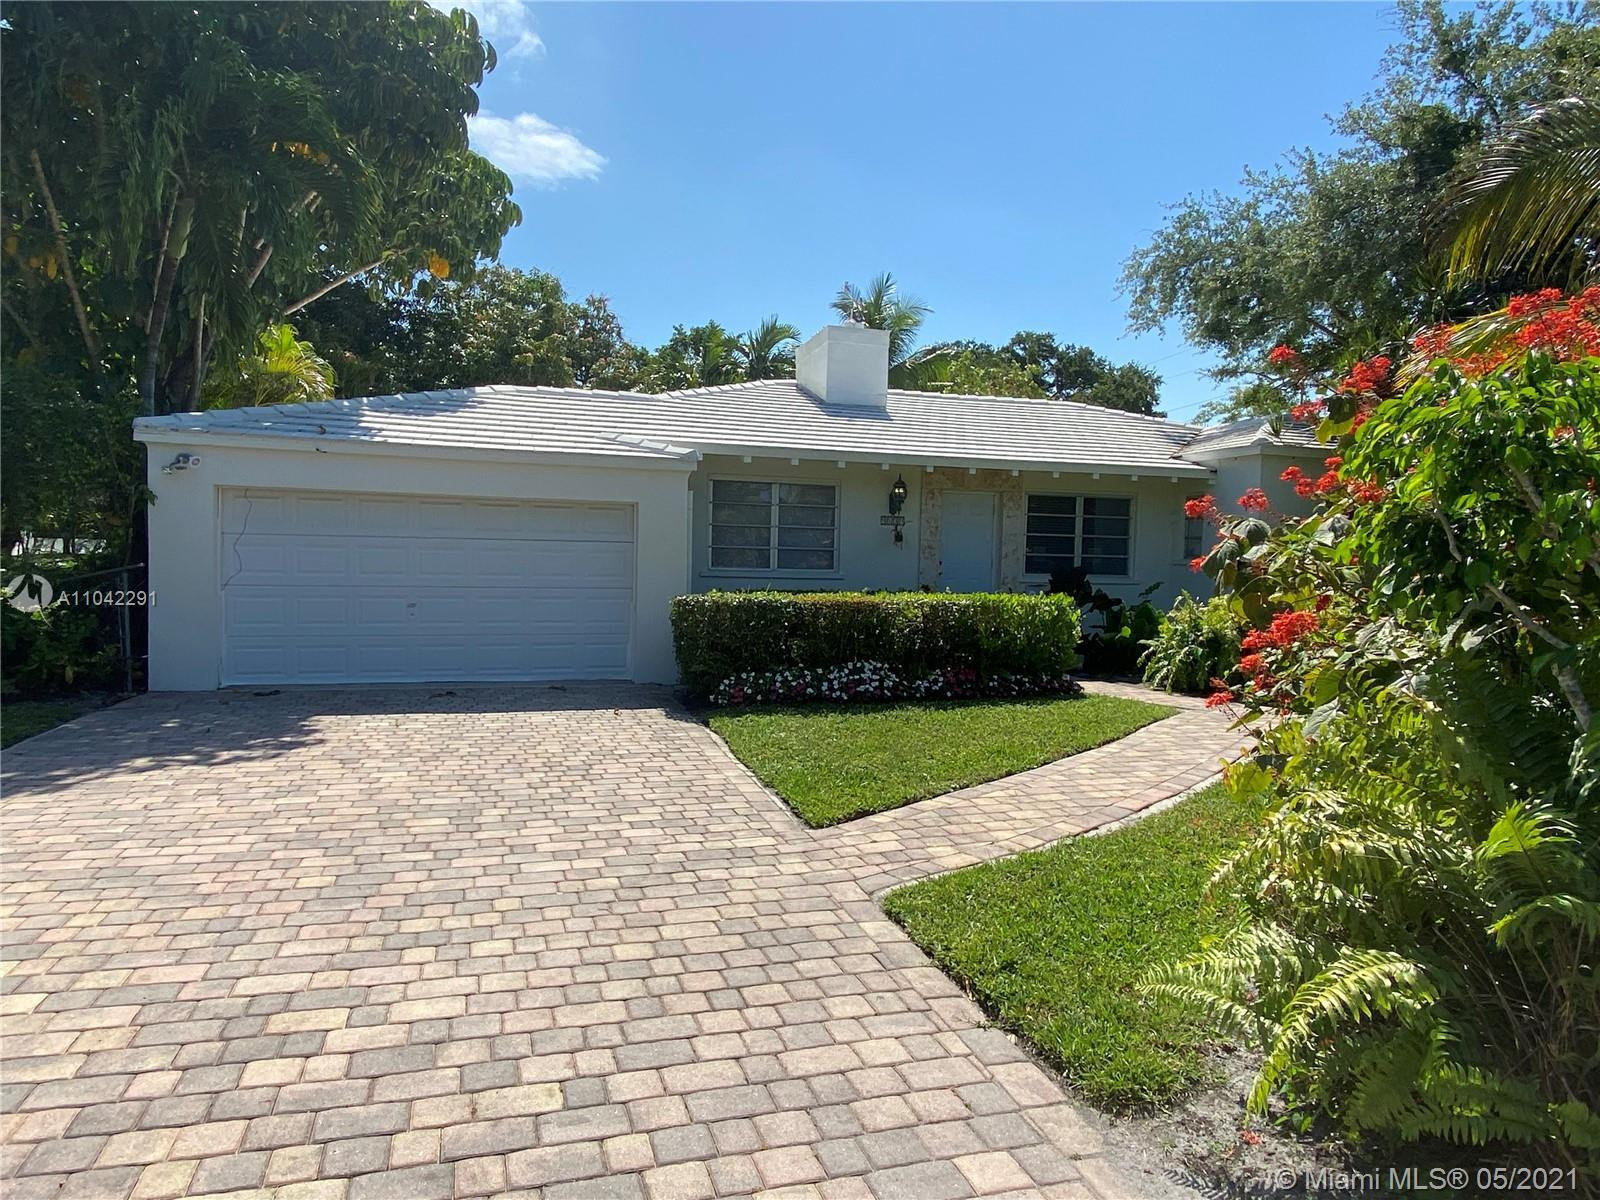 Beautiful and spacious 2 Bdrm 1.5 bath home in Miami Shores on a 11,760sqft corner lot. The home fea